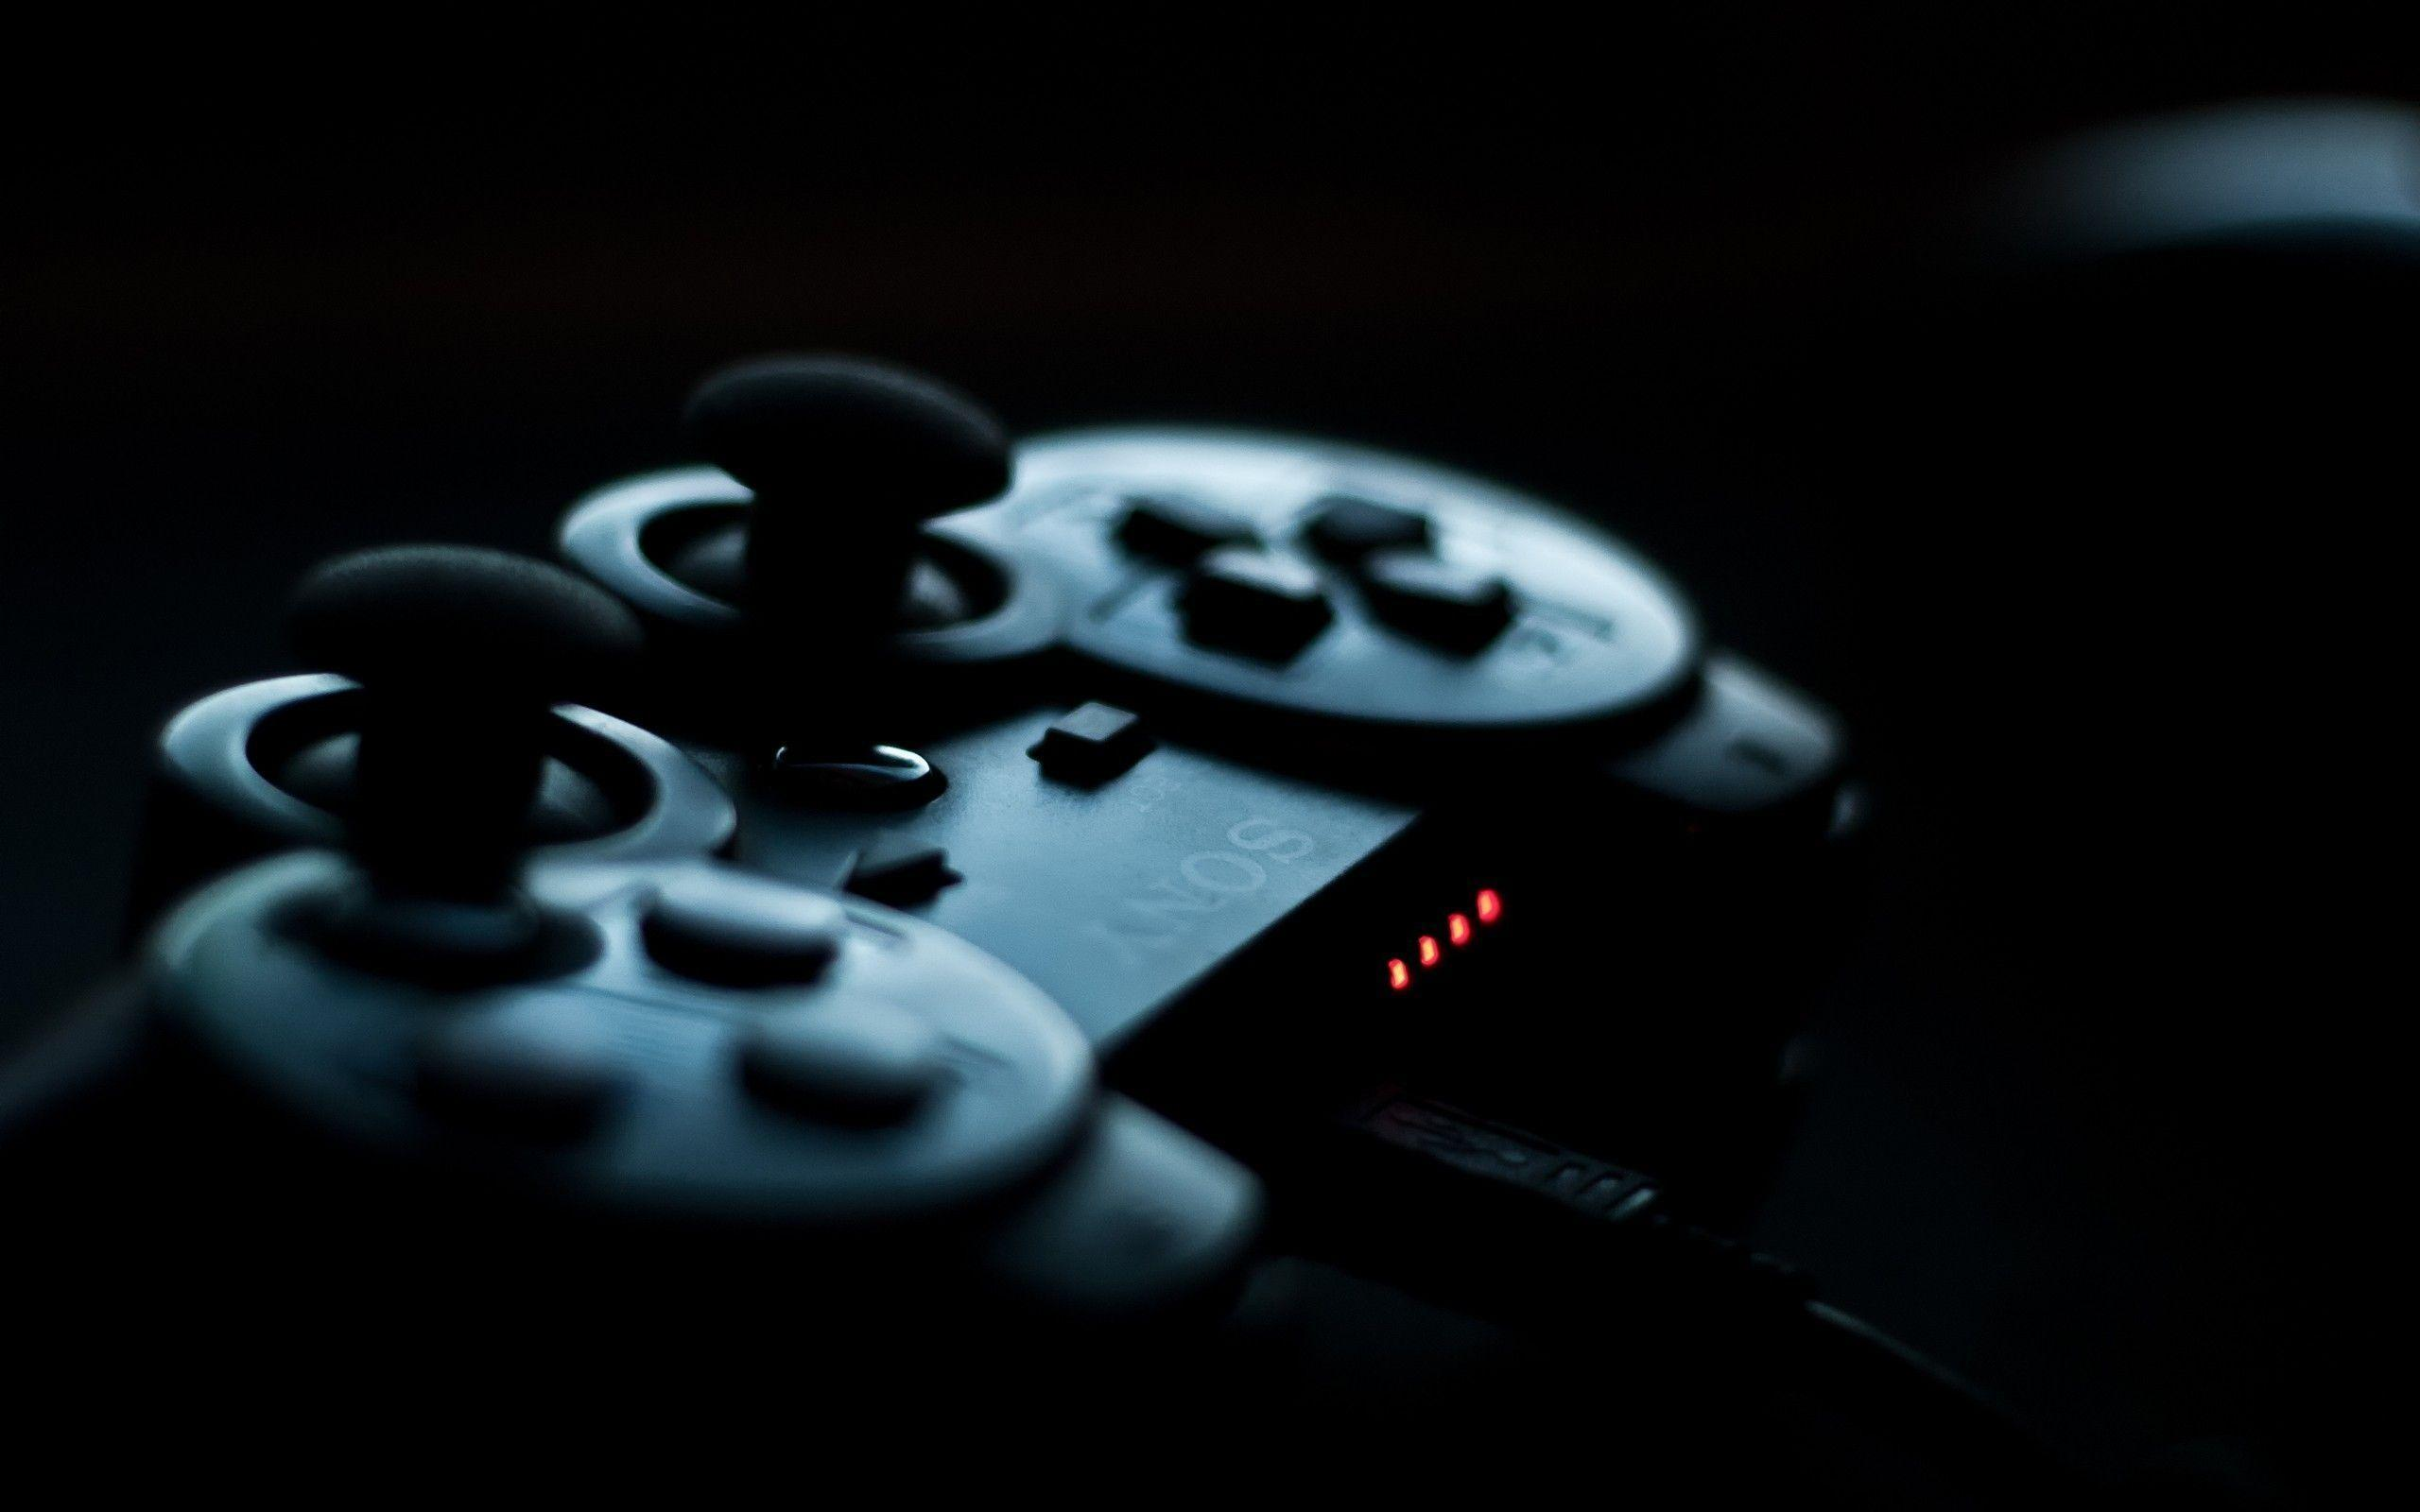 Wallpapers For > Playstation 4 Controller Wallpapers